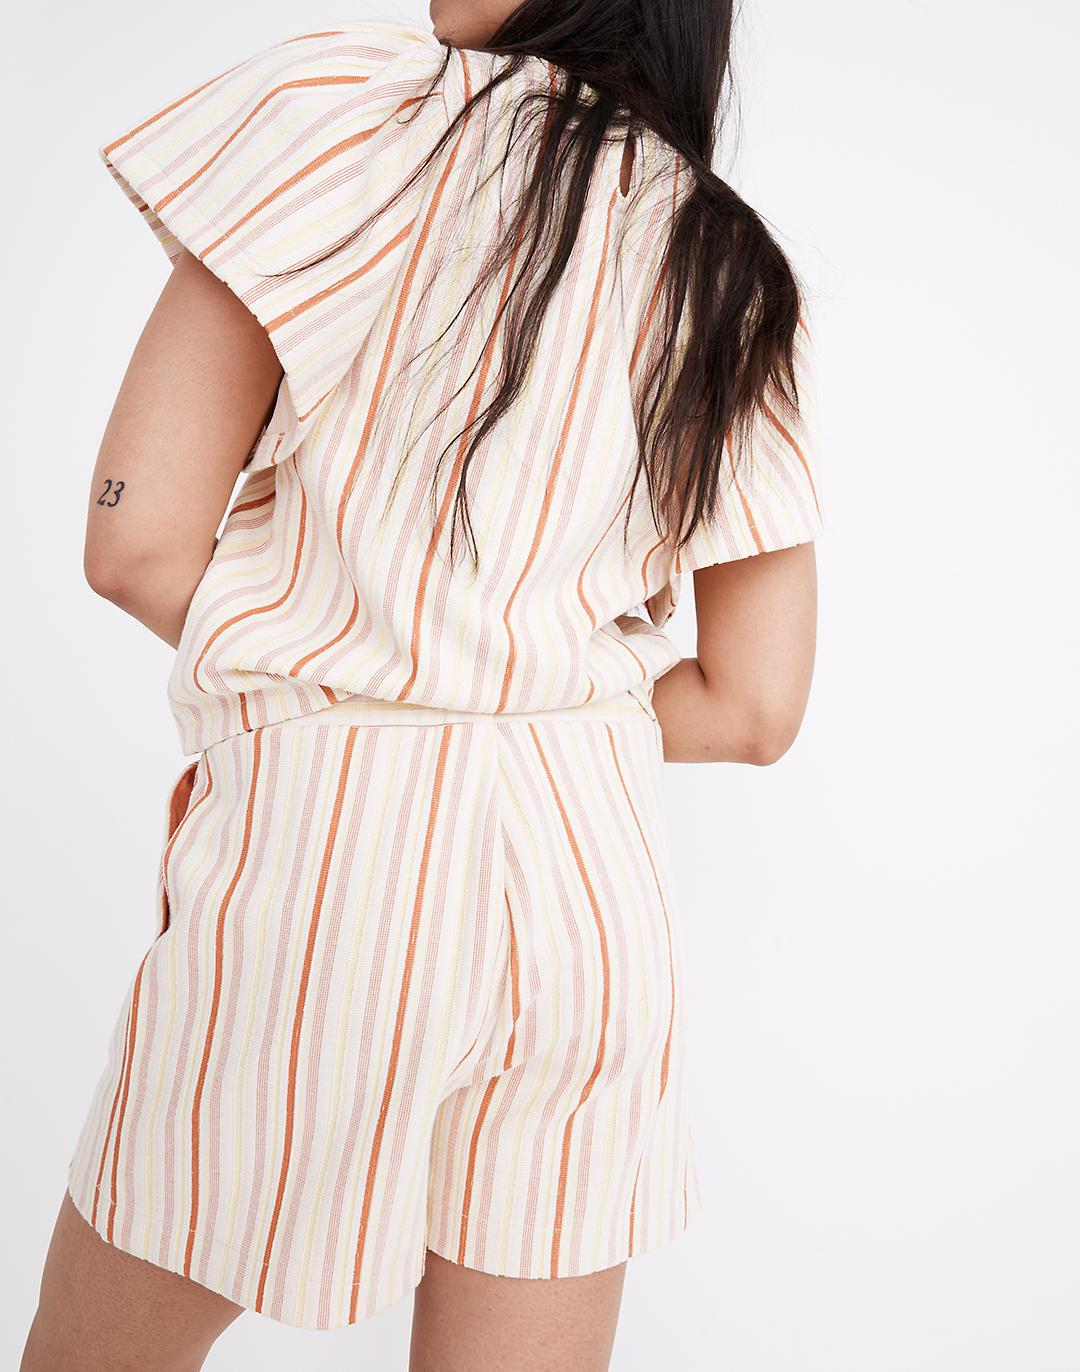 Textural Knit High-Rise Pleated Shorts in Stripe 1